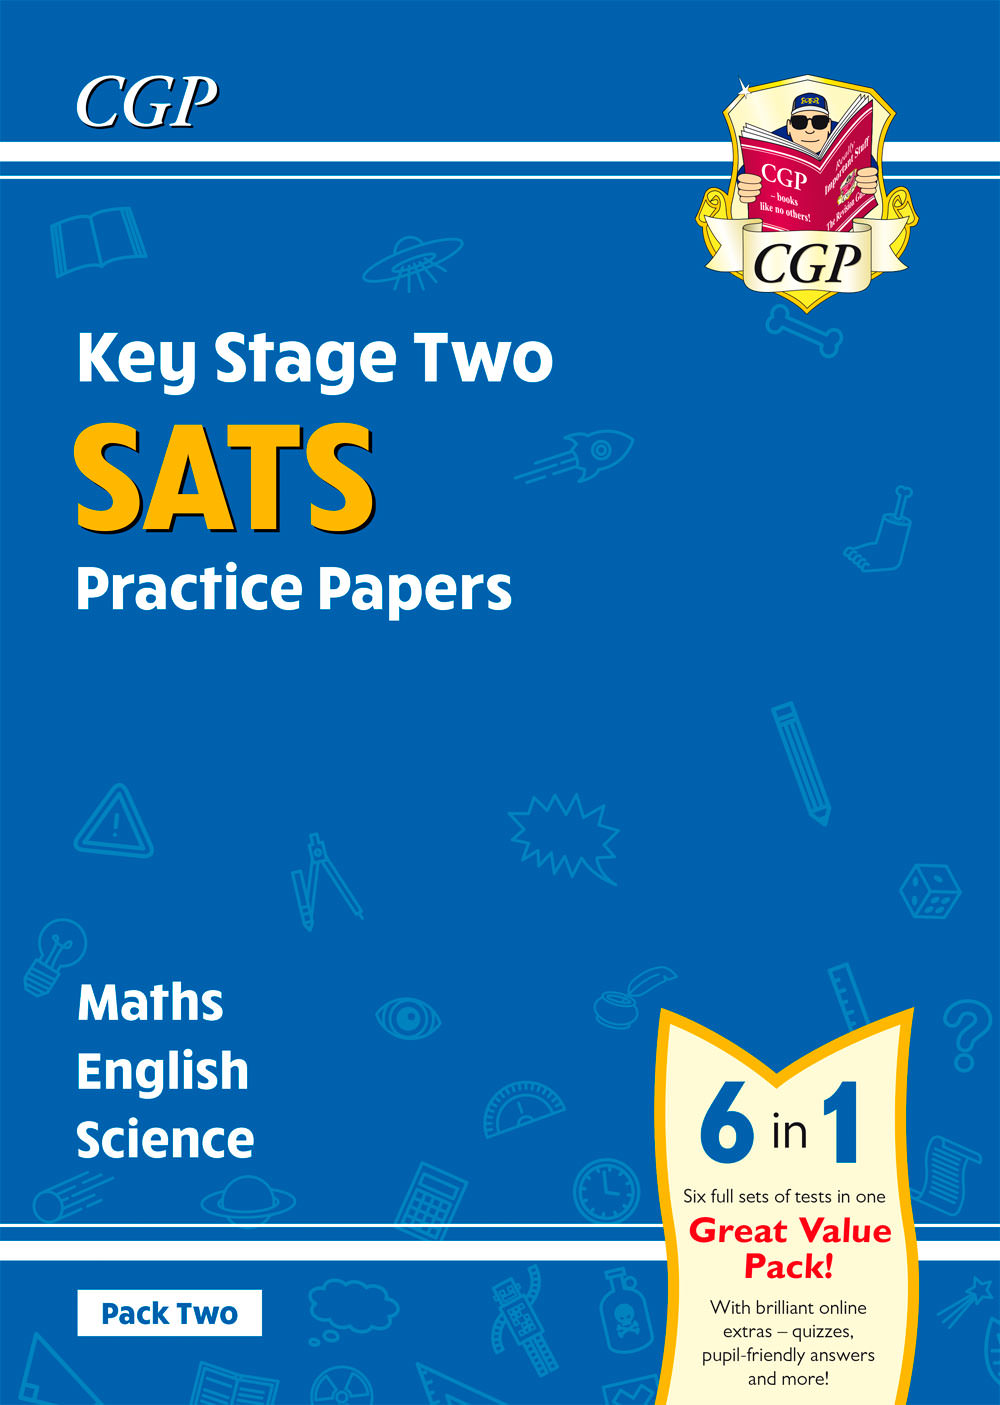 SMEB224 - New KS2 Complete SATS Practice Papers Pack 2: Science, Maths & English